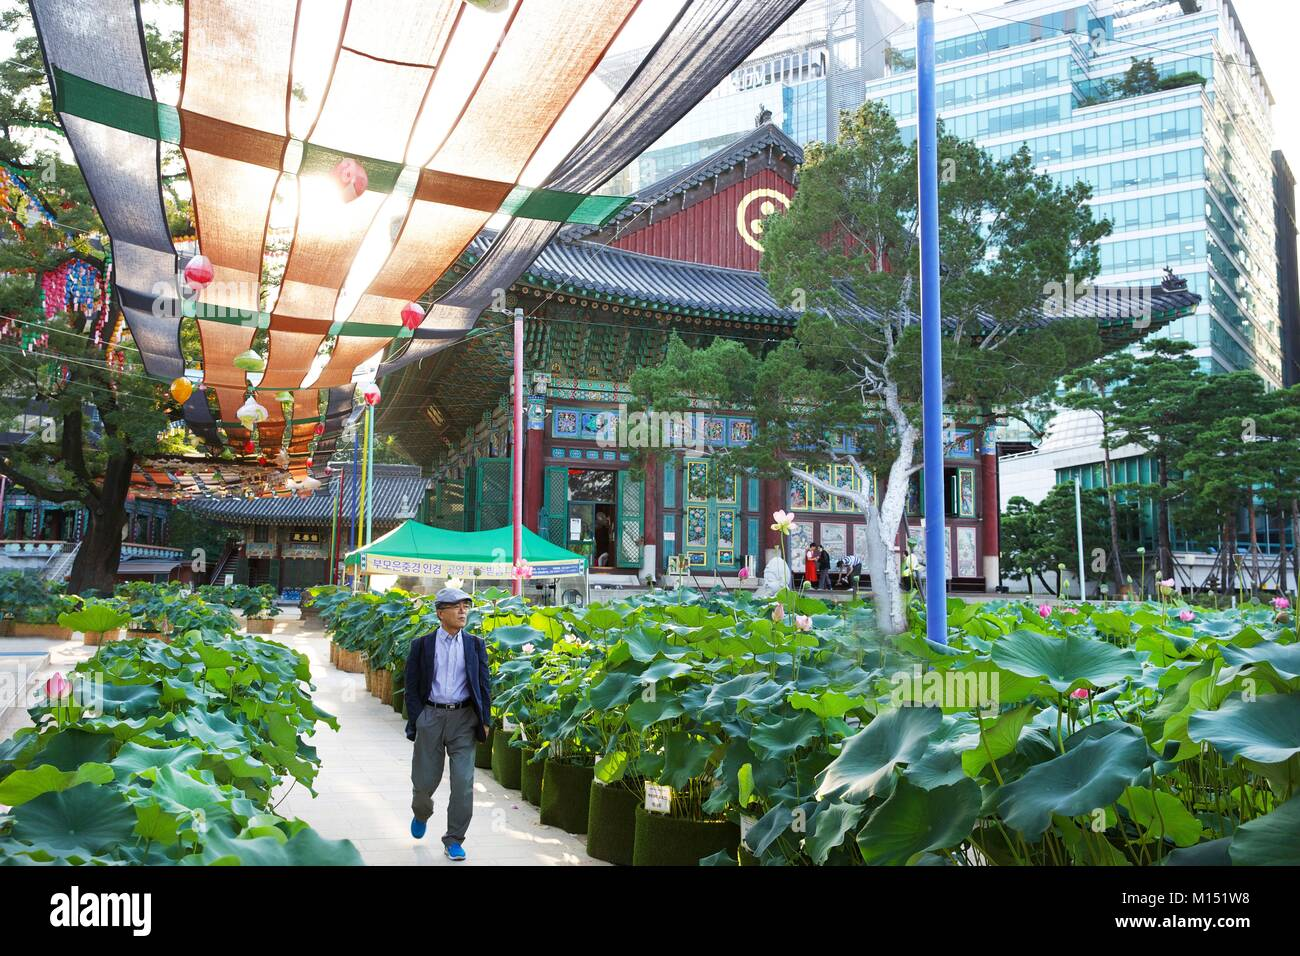 South Korea, Seoul, old man in the courtyard of the Joyesa temple decorated with lotus in pots - Stock Image